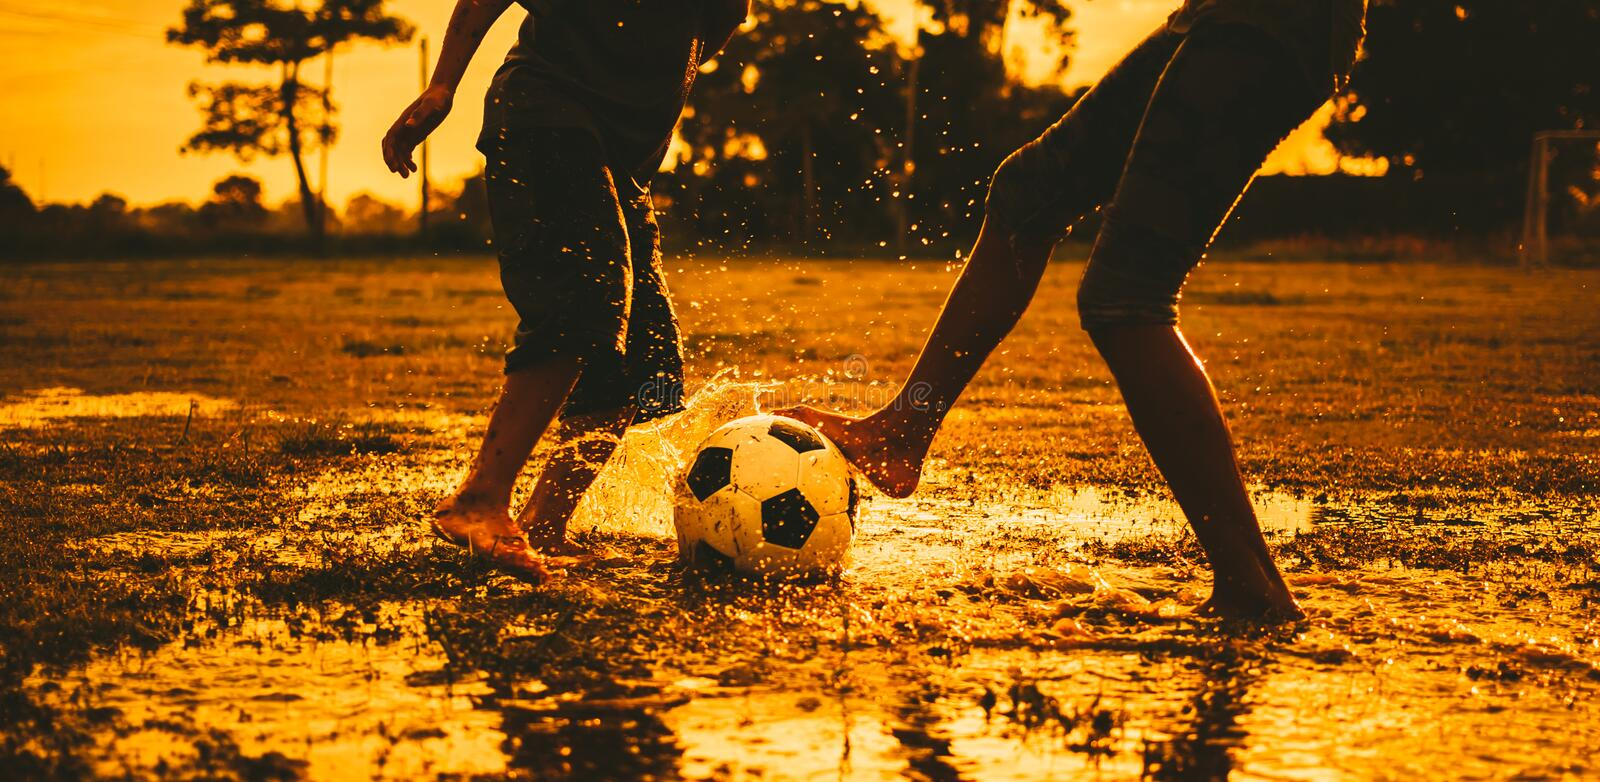 Action sport outdoors of a group of kids having fun playing soccer football for exercise in community rural area under the twiligh royalty free stock image